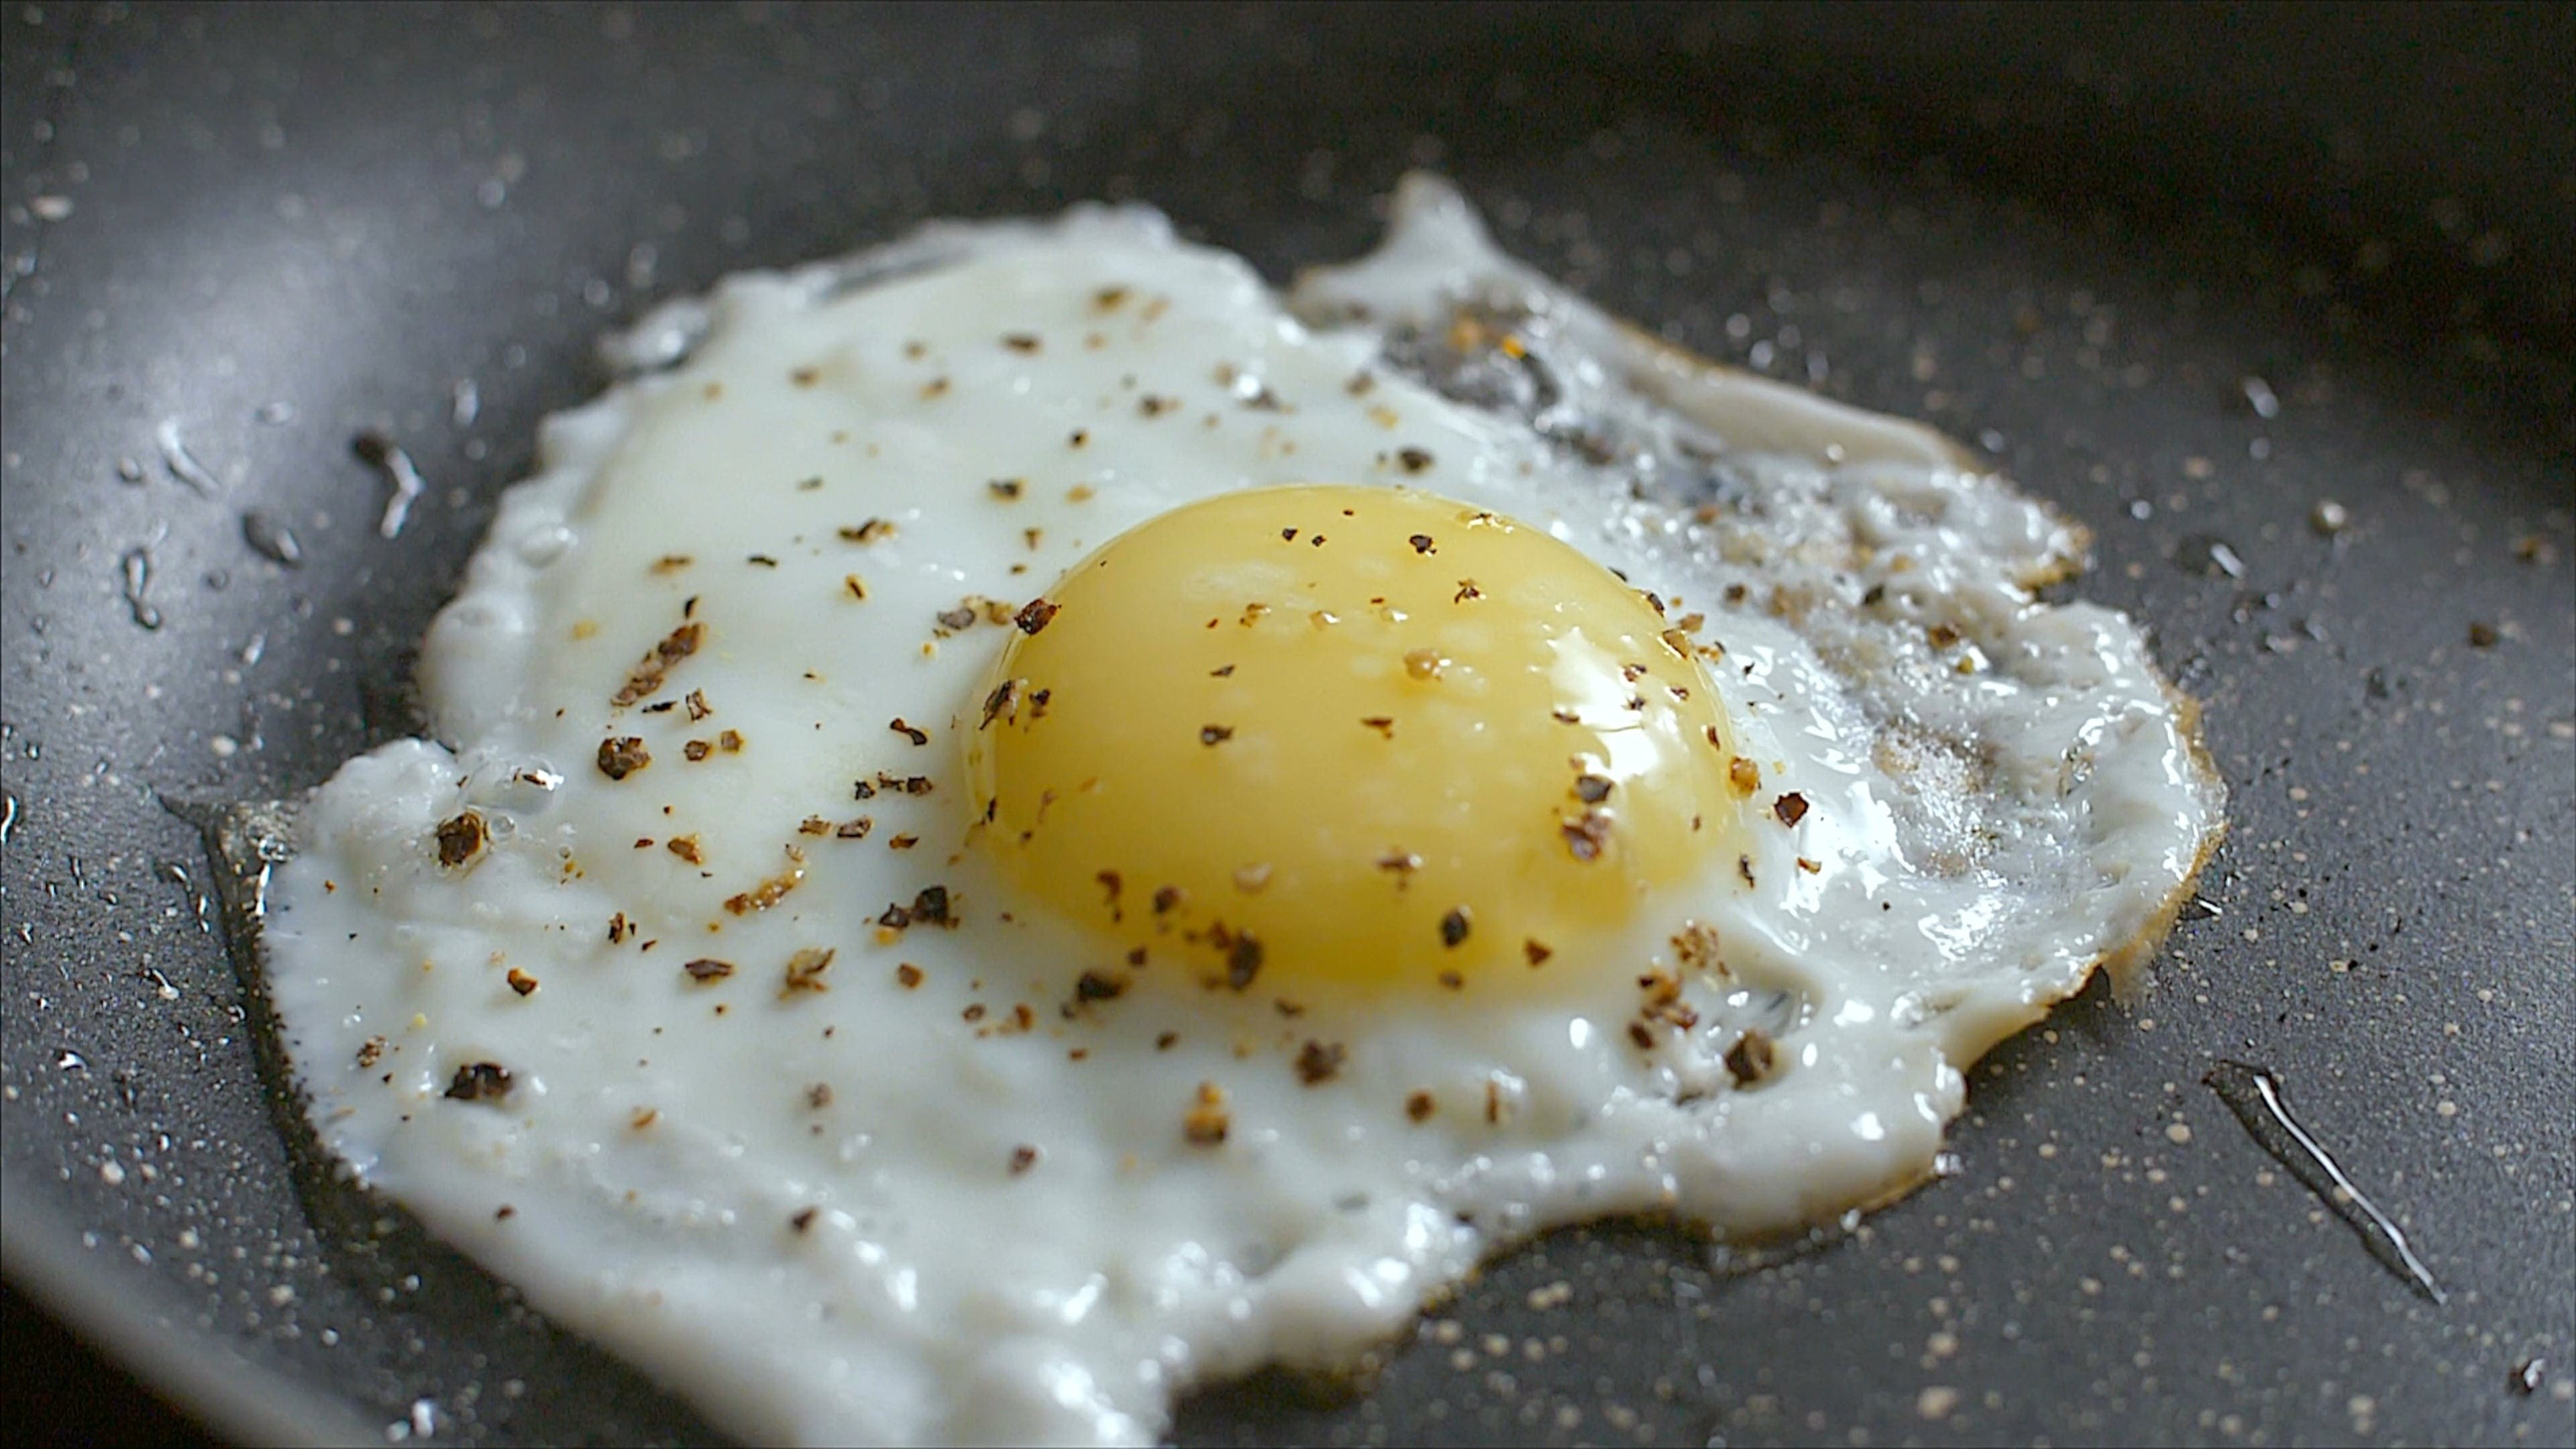 Close-Up View View Of A Sunny Side Up Cooked Egg